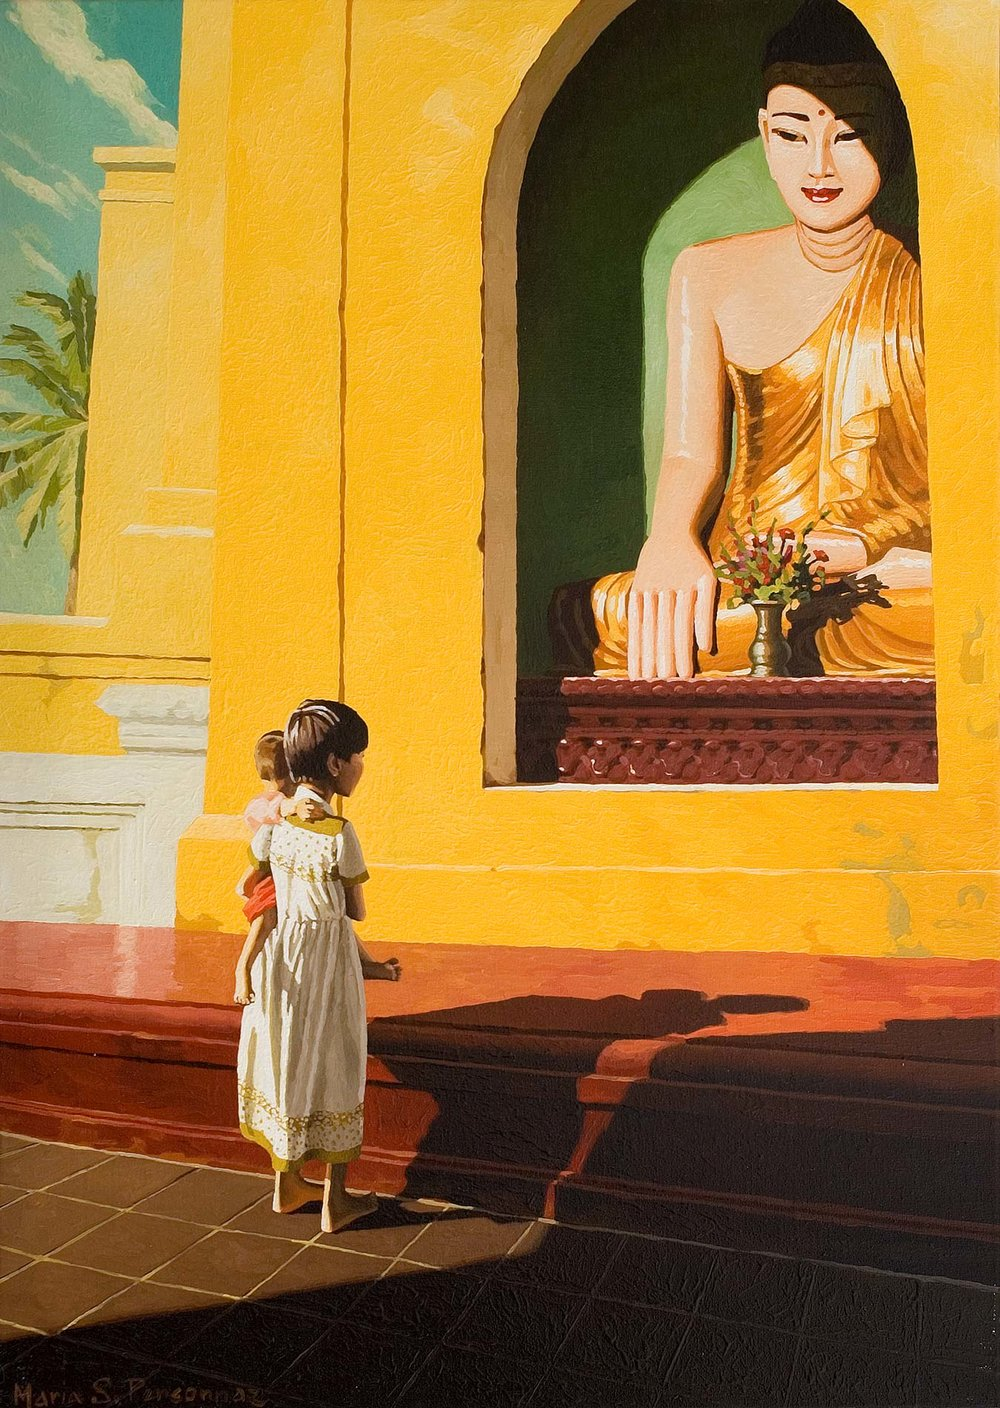 Two children and the Buddha, Yangon